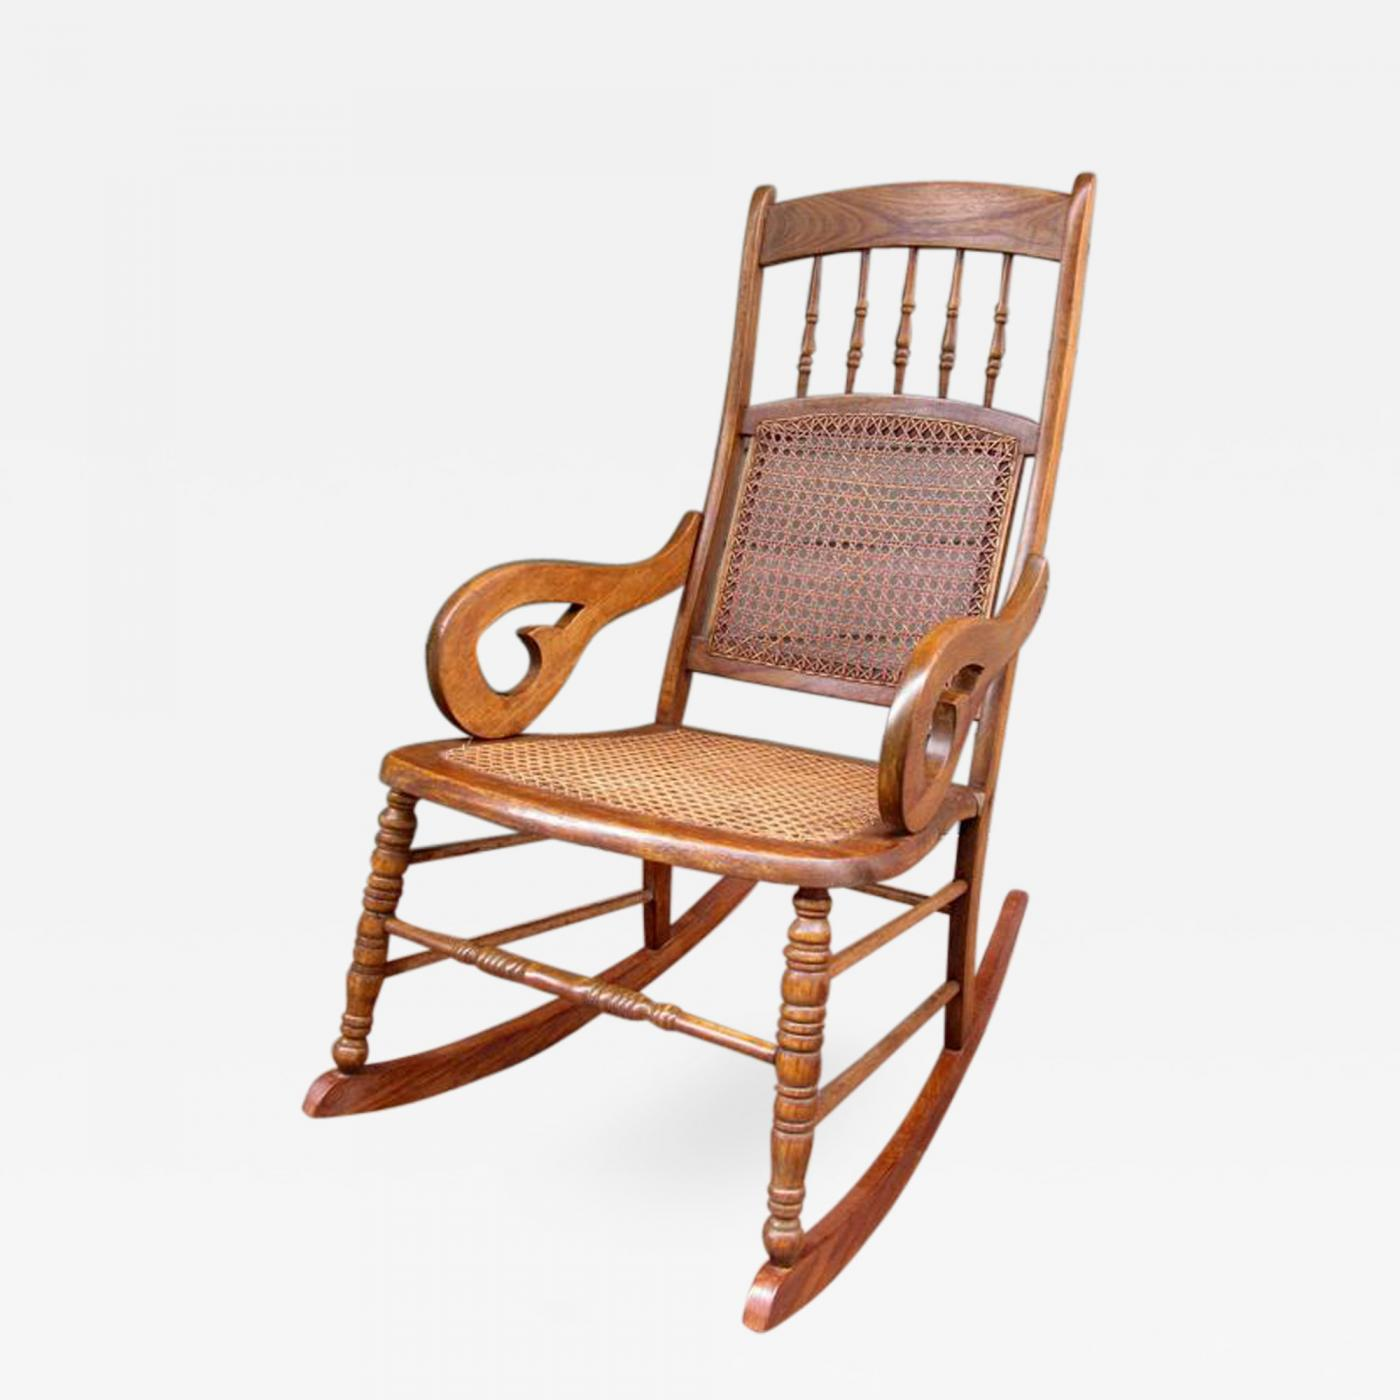 ... Cane Rocking Chair. More Images Want More Images?